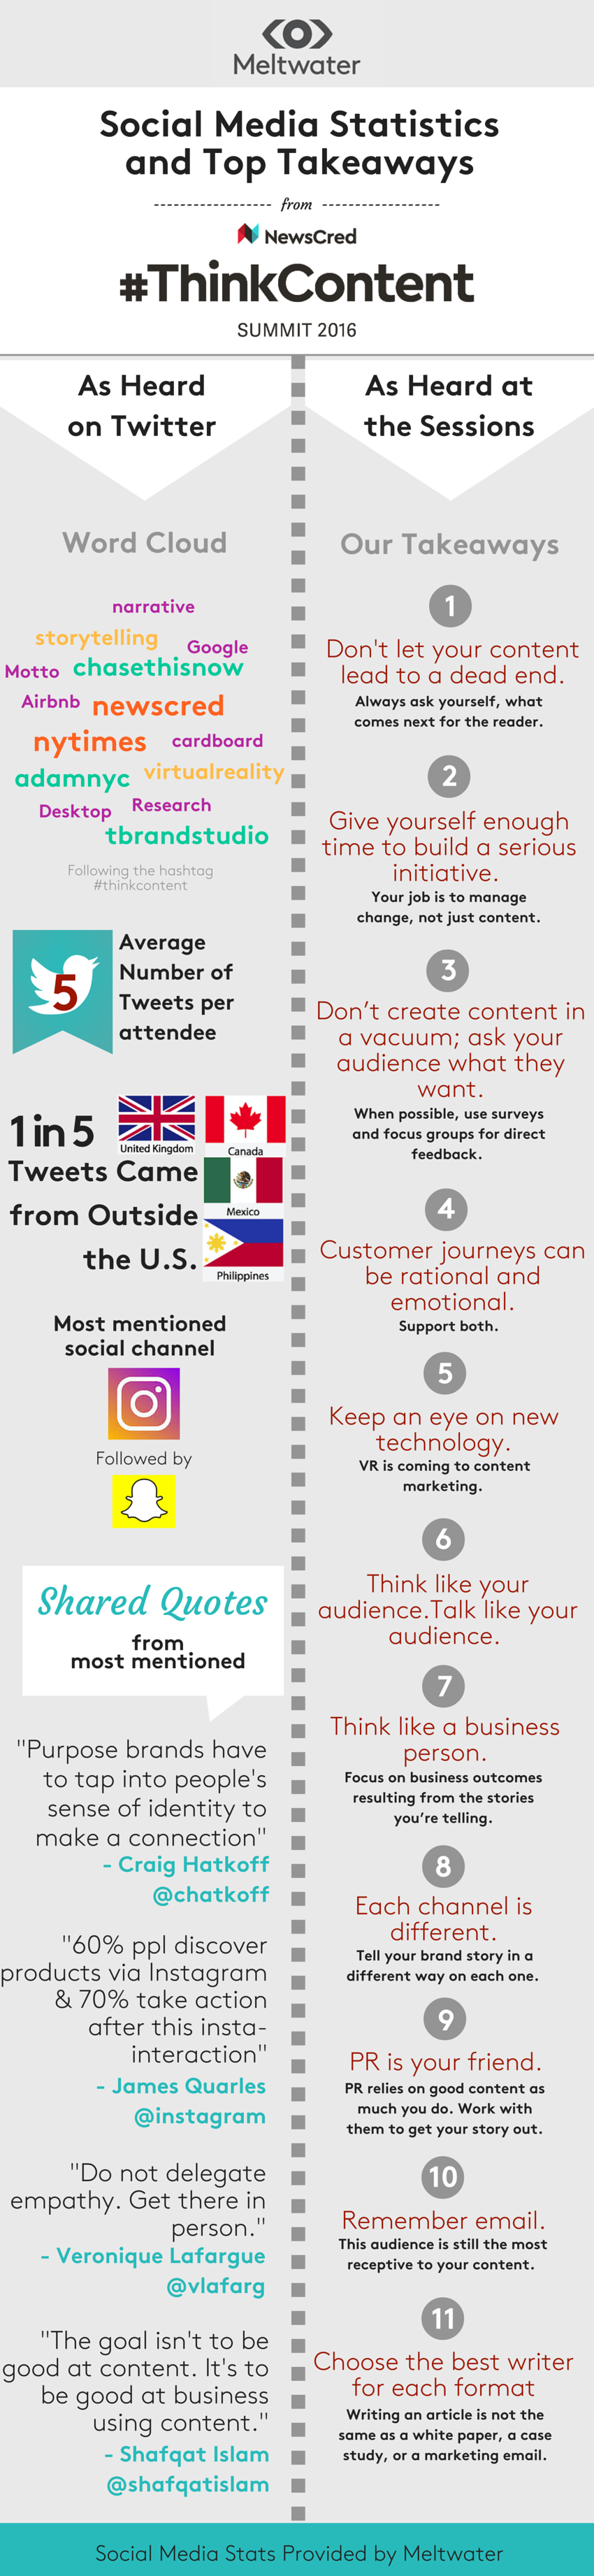 MeltwaterThinkContent Infographic .png